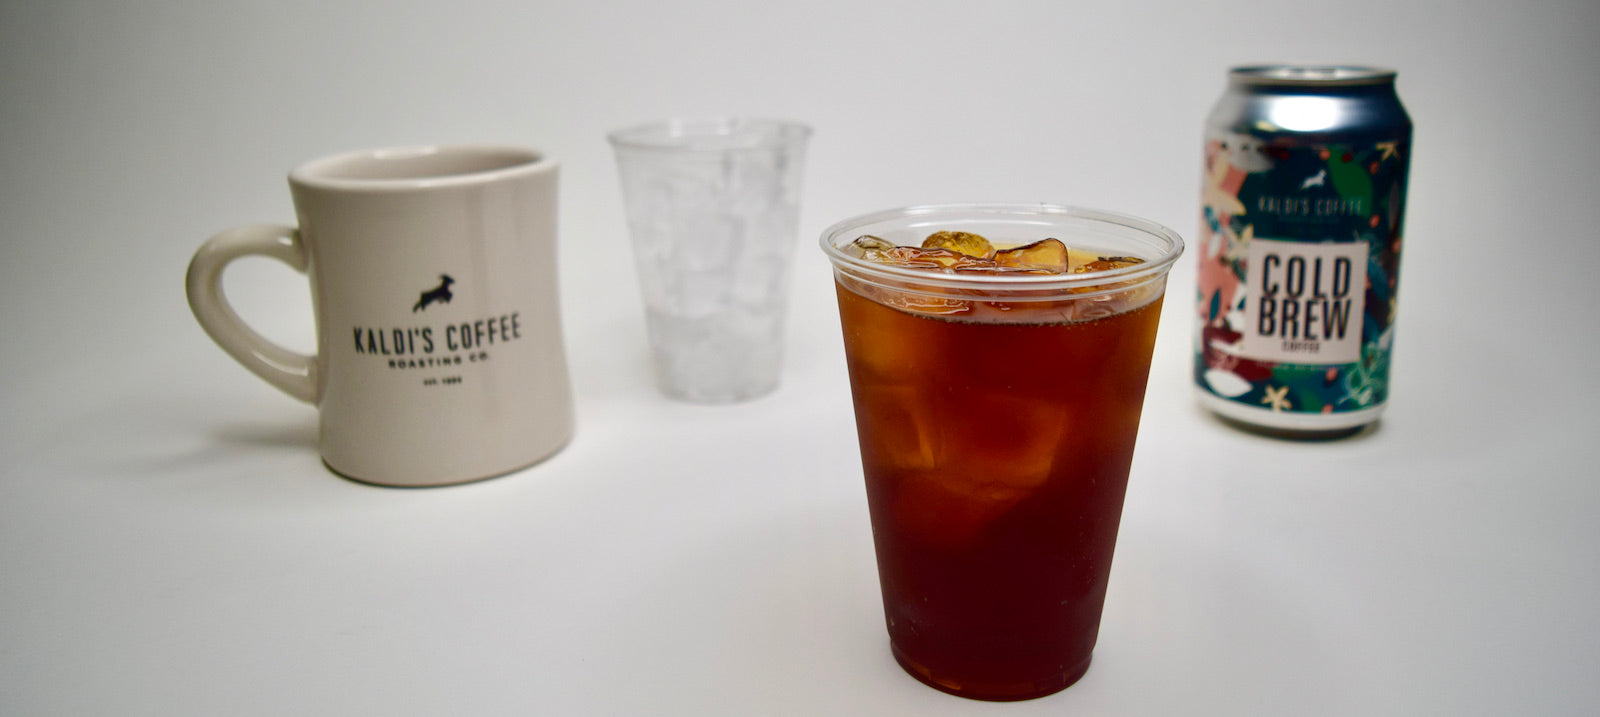 Kaldi's Cold Brew Line Up - A can of cold brew coffee with a mug and a plastic cup